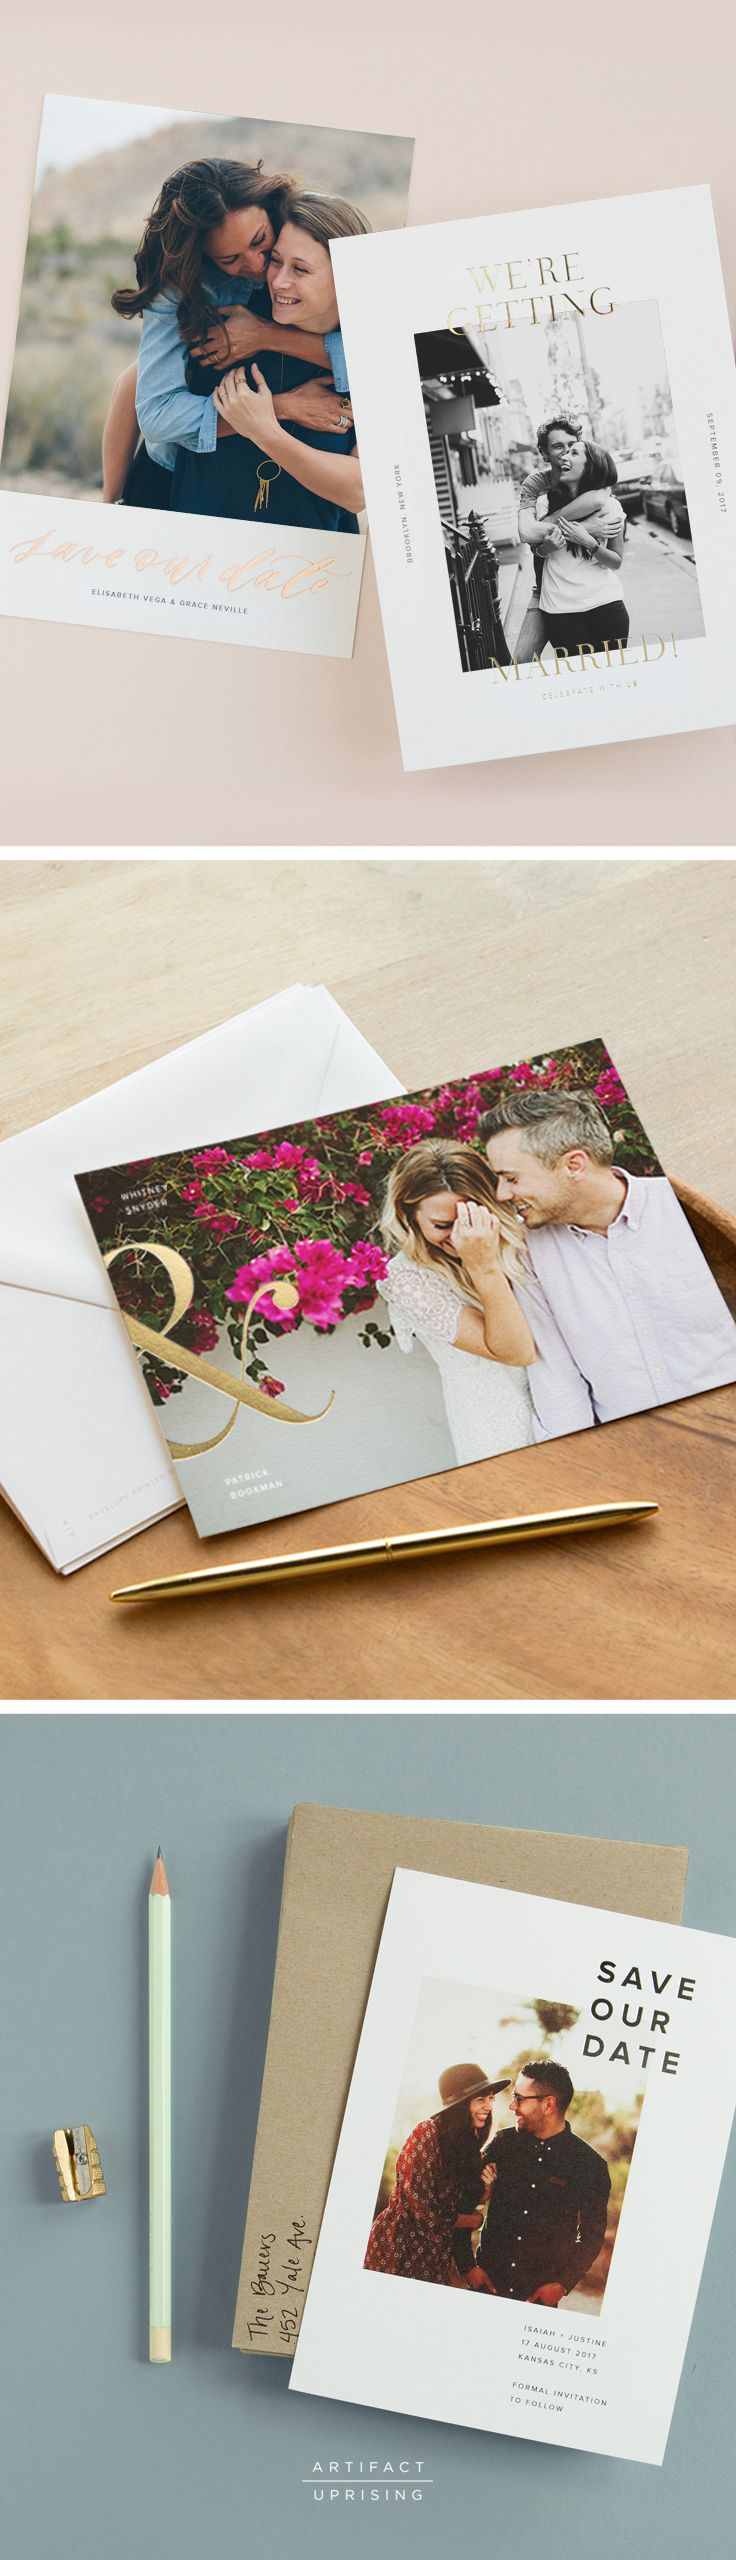 Make it official with @artifactuprsng's Save the Dates. Elevated quality meets well-thought-out design.